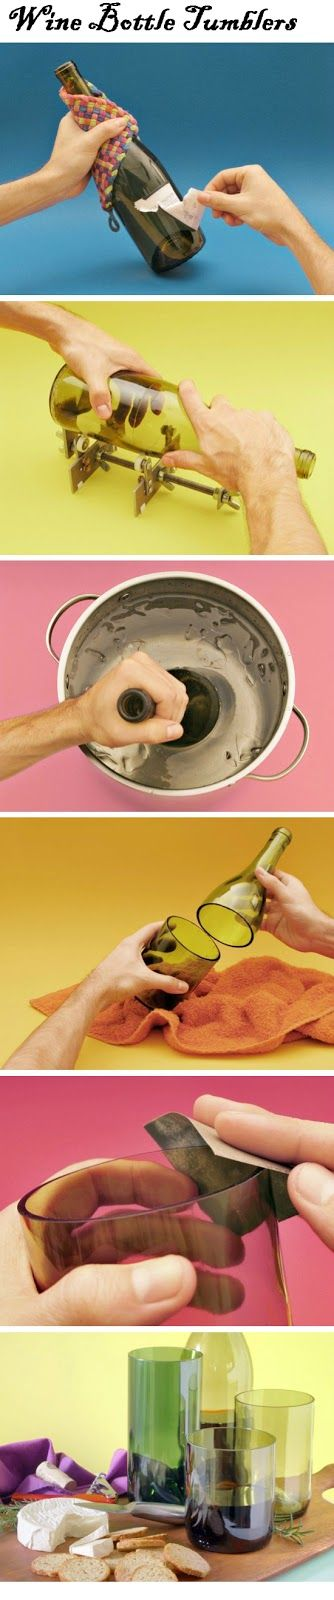 Wine Bottle Tumblers | Crafts and DIY Community